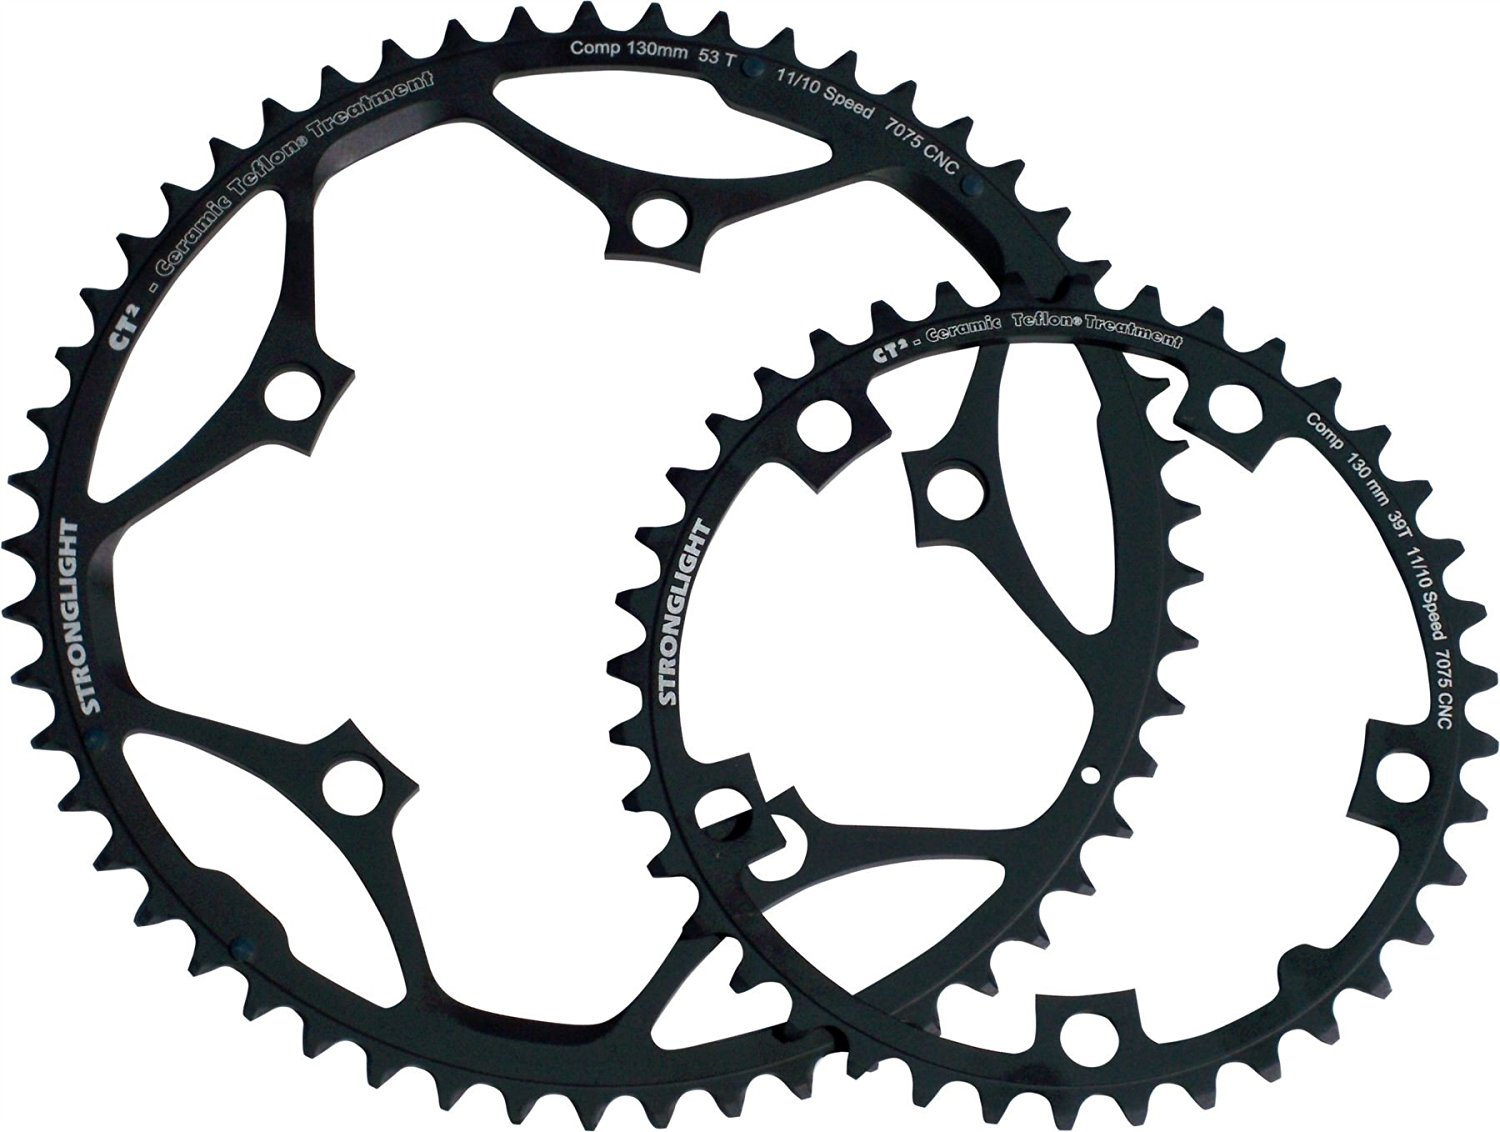 Stronglight CT2 Ceramic Teflon Black 130mm Shimano Standard Chainring - 48T (272607)